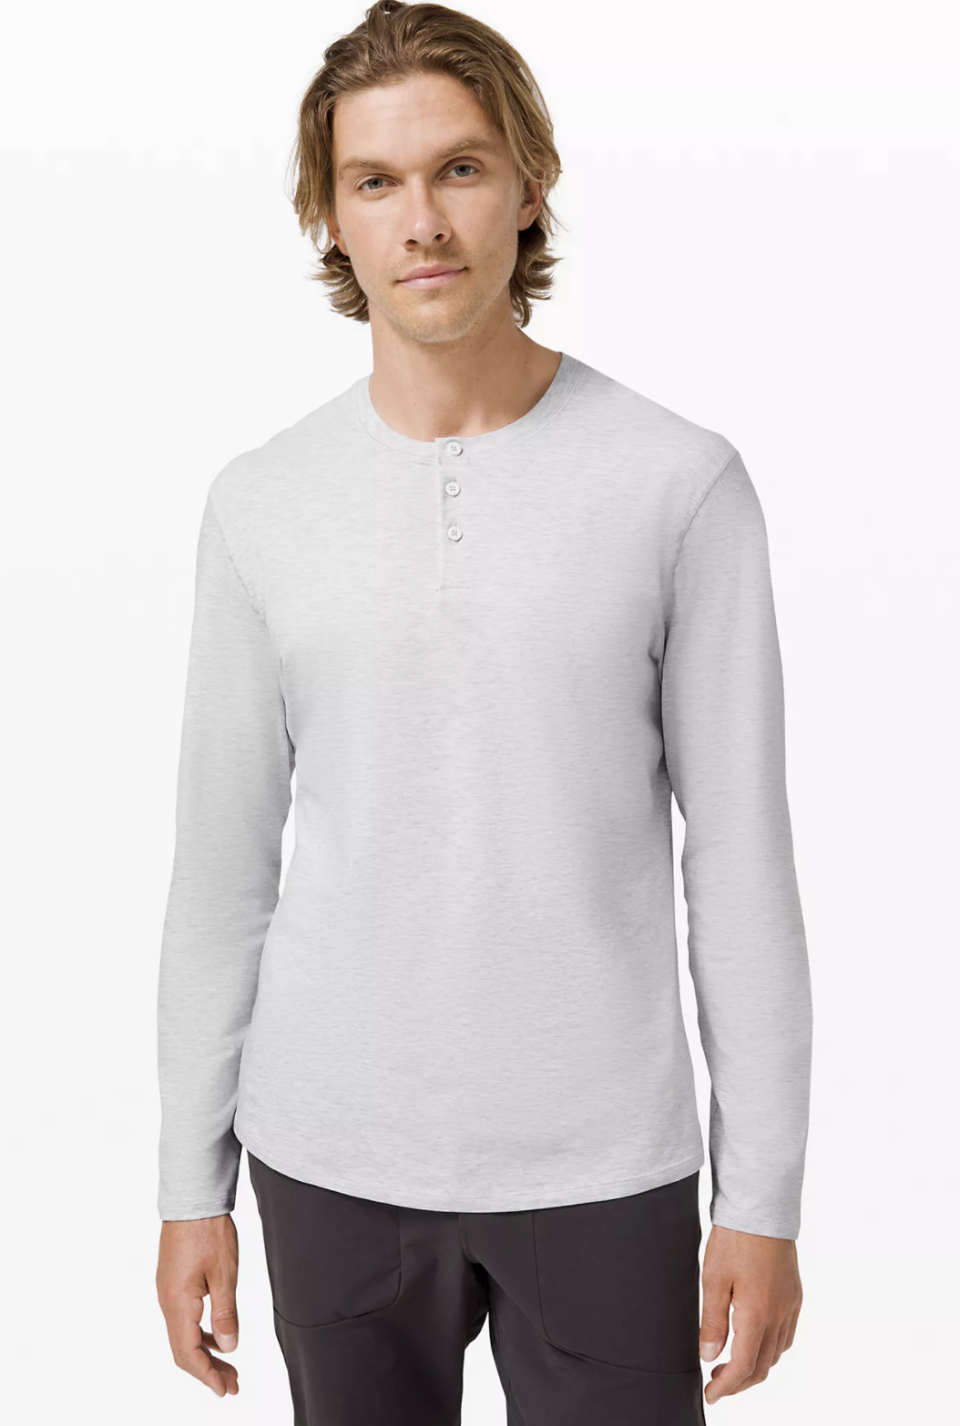 5 Year Long Sleeve Henley - Lululemon, $74.